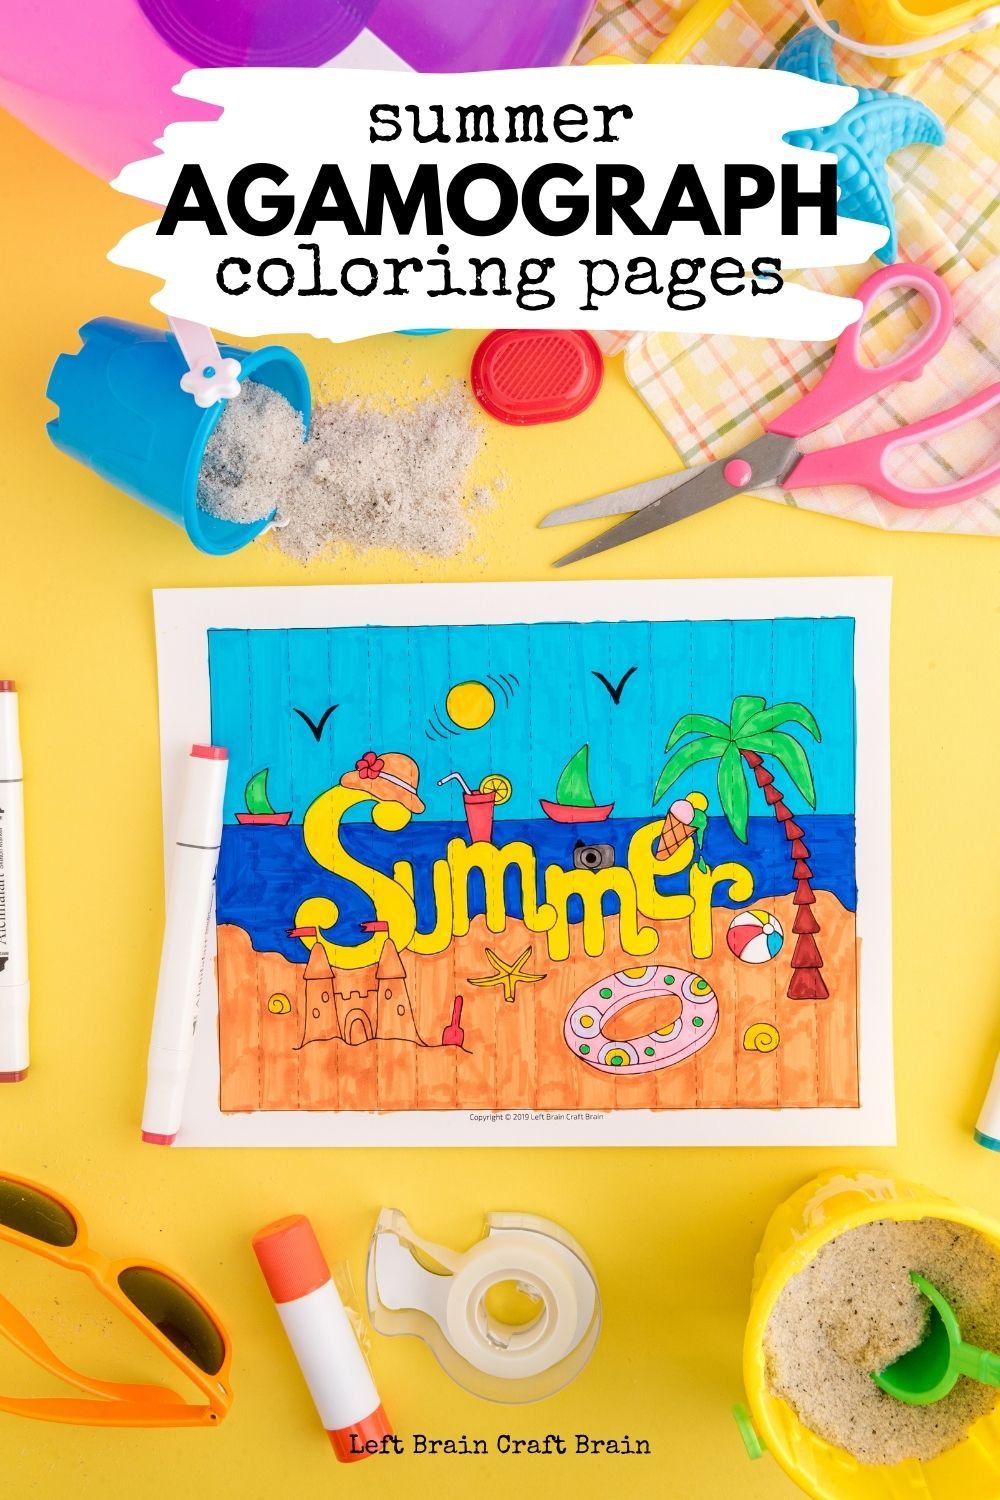 Have some fun coloring this summer with an agamograph, a unique paper craft. It flips the picture when you shift the angle for twice the fun.